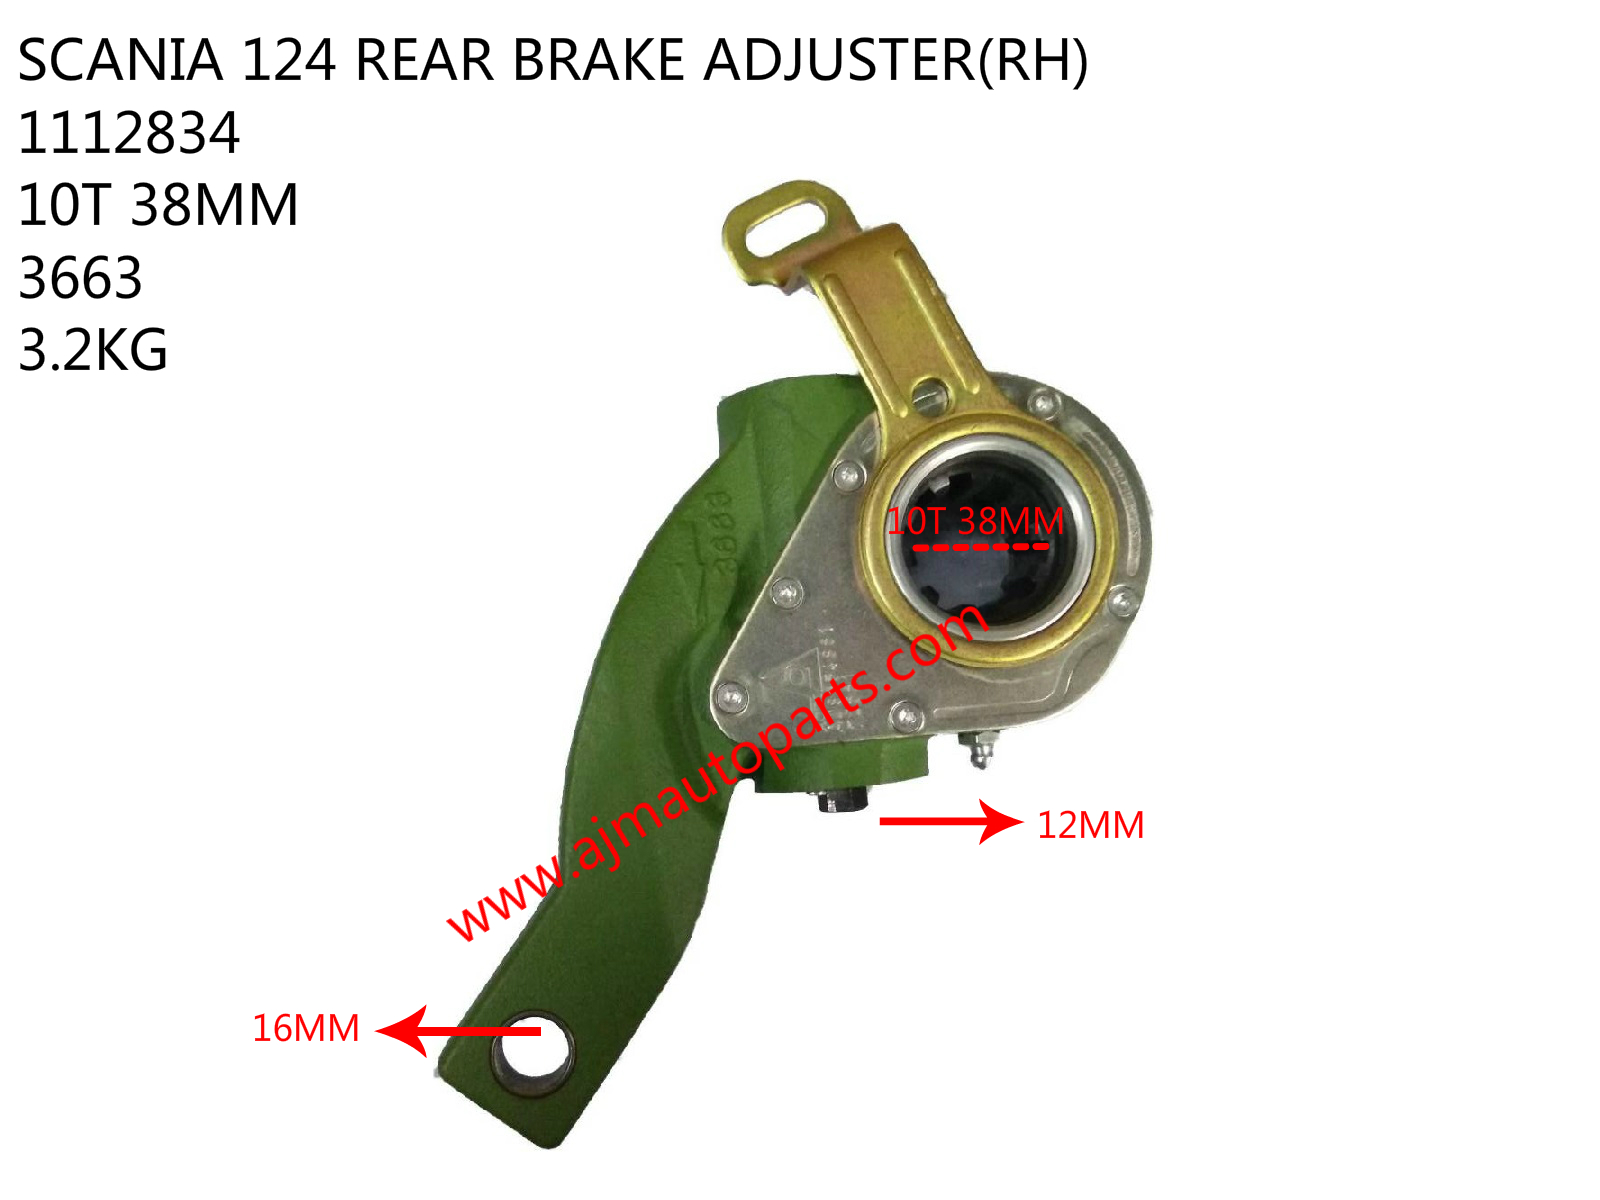 SCANIA 124 REAR ADJUSTER(RH)-1112834